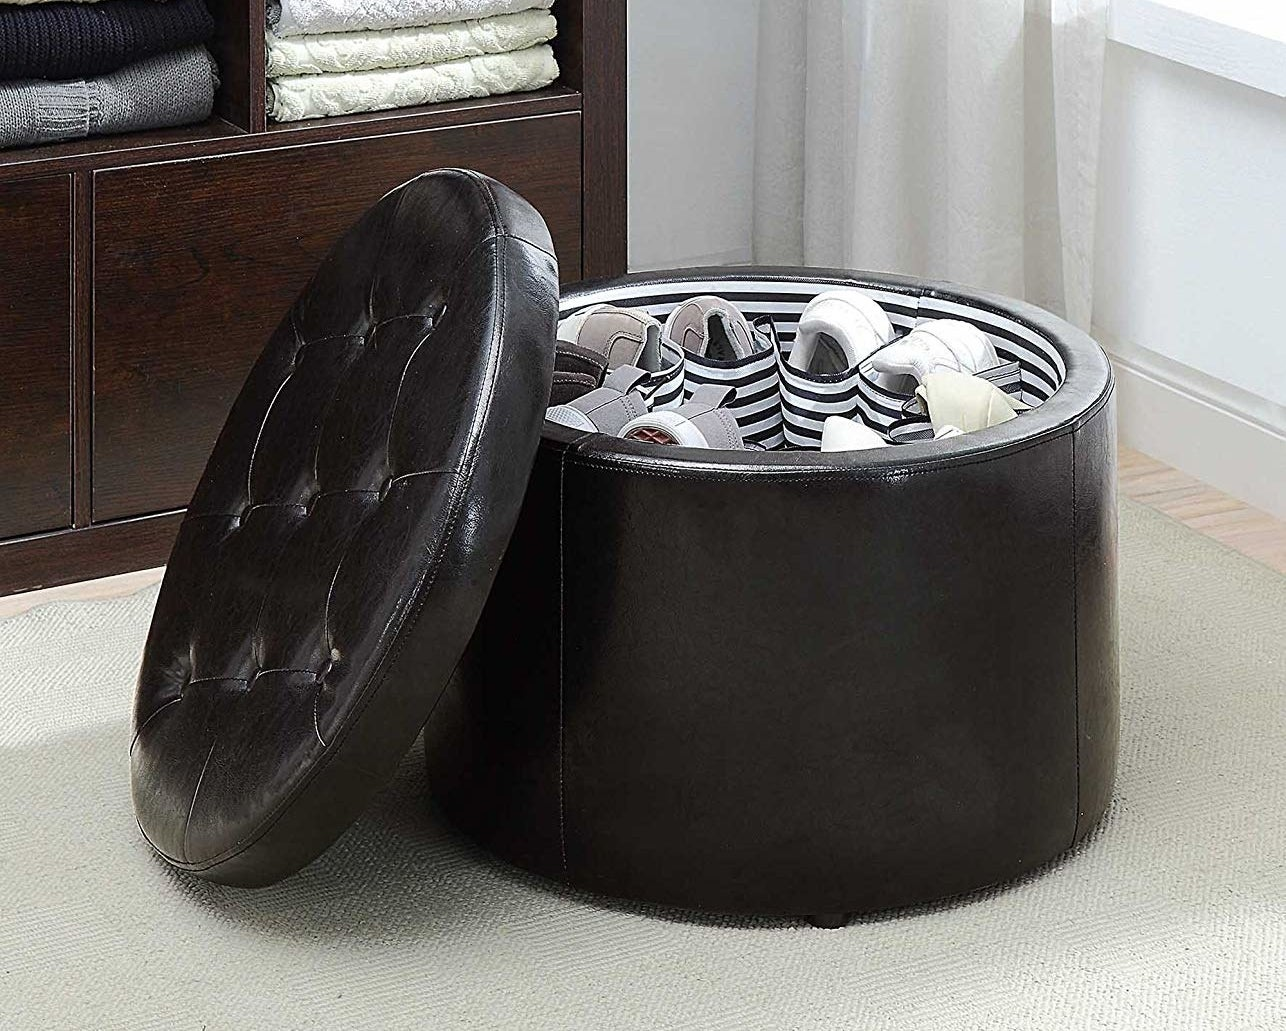 A round black ottoman with a tufted lid, showing that there are pockets on the inside that hold shoes